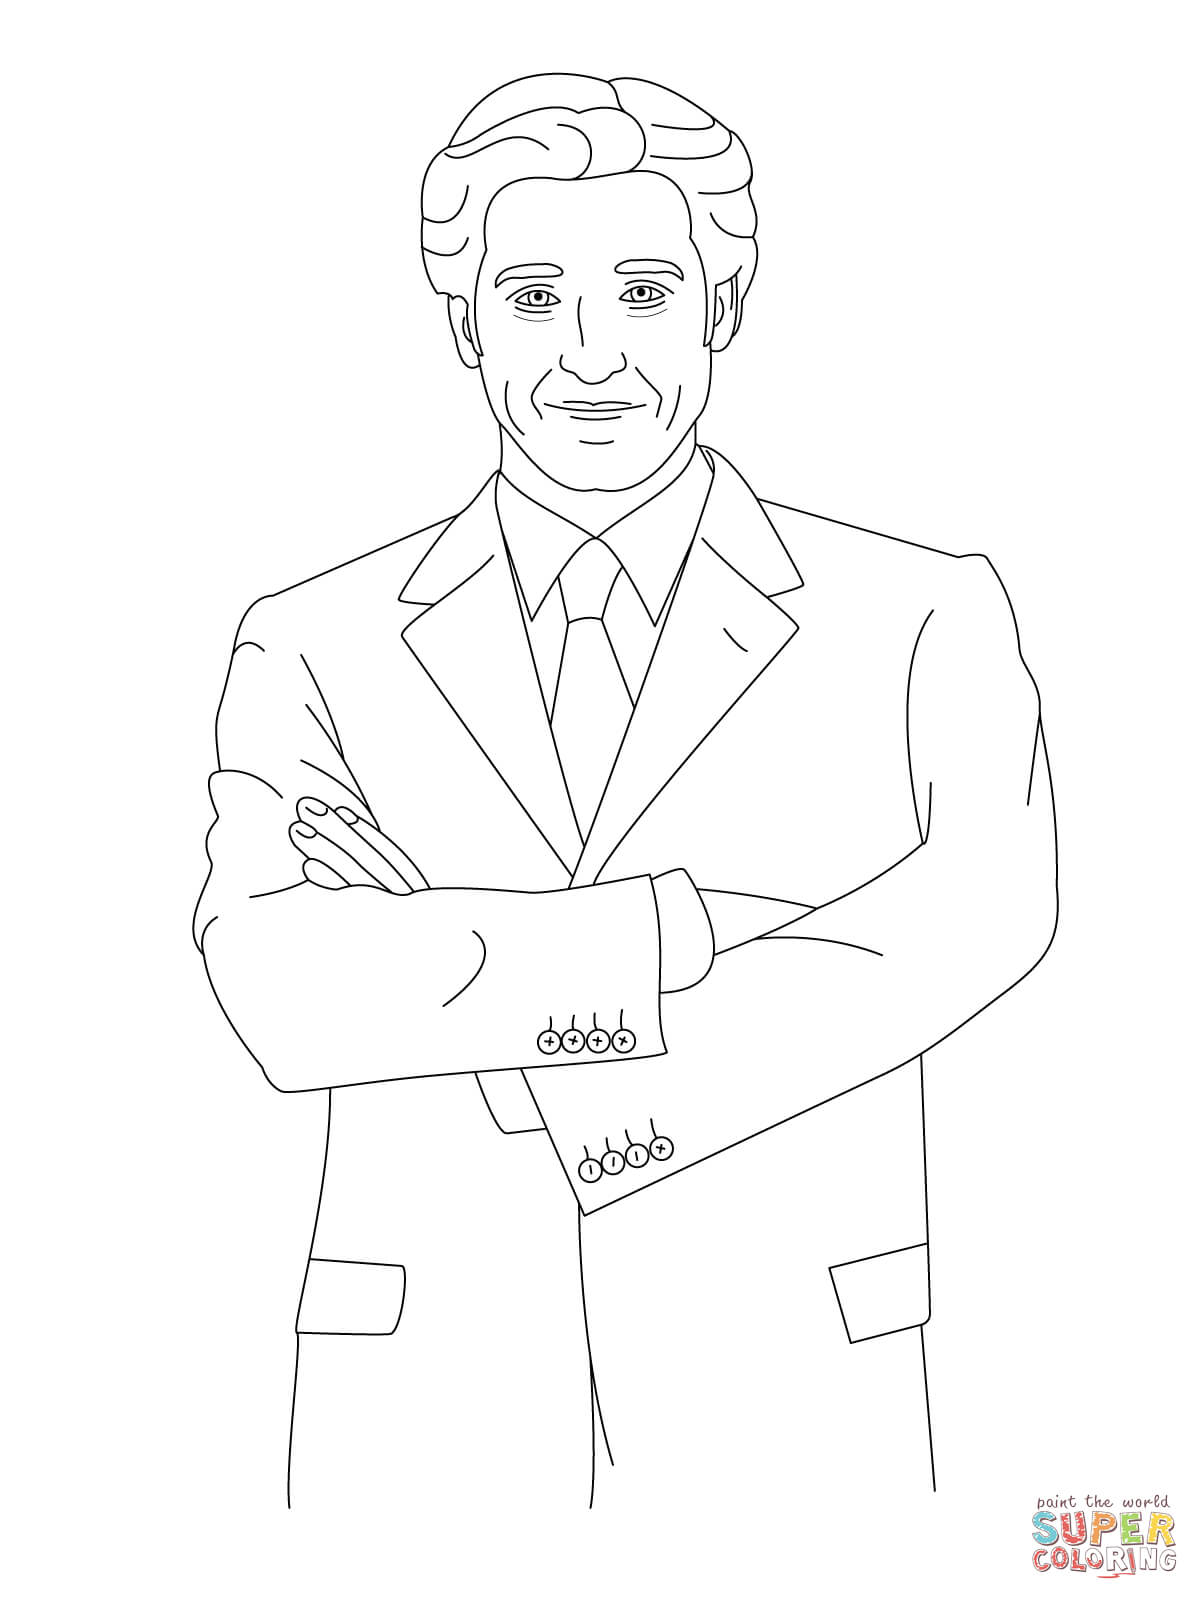 Robert Philip Coloring Page Free Printable Coloring Pages